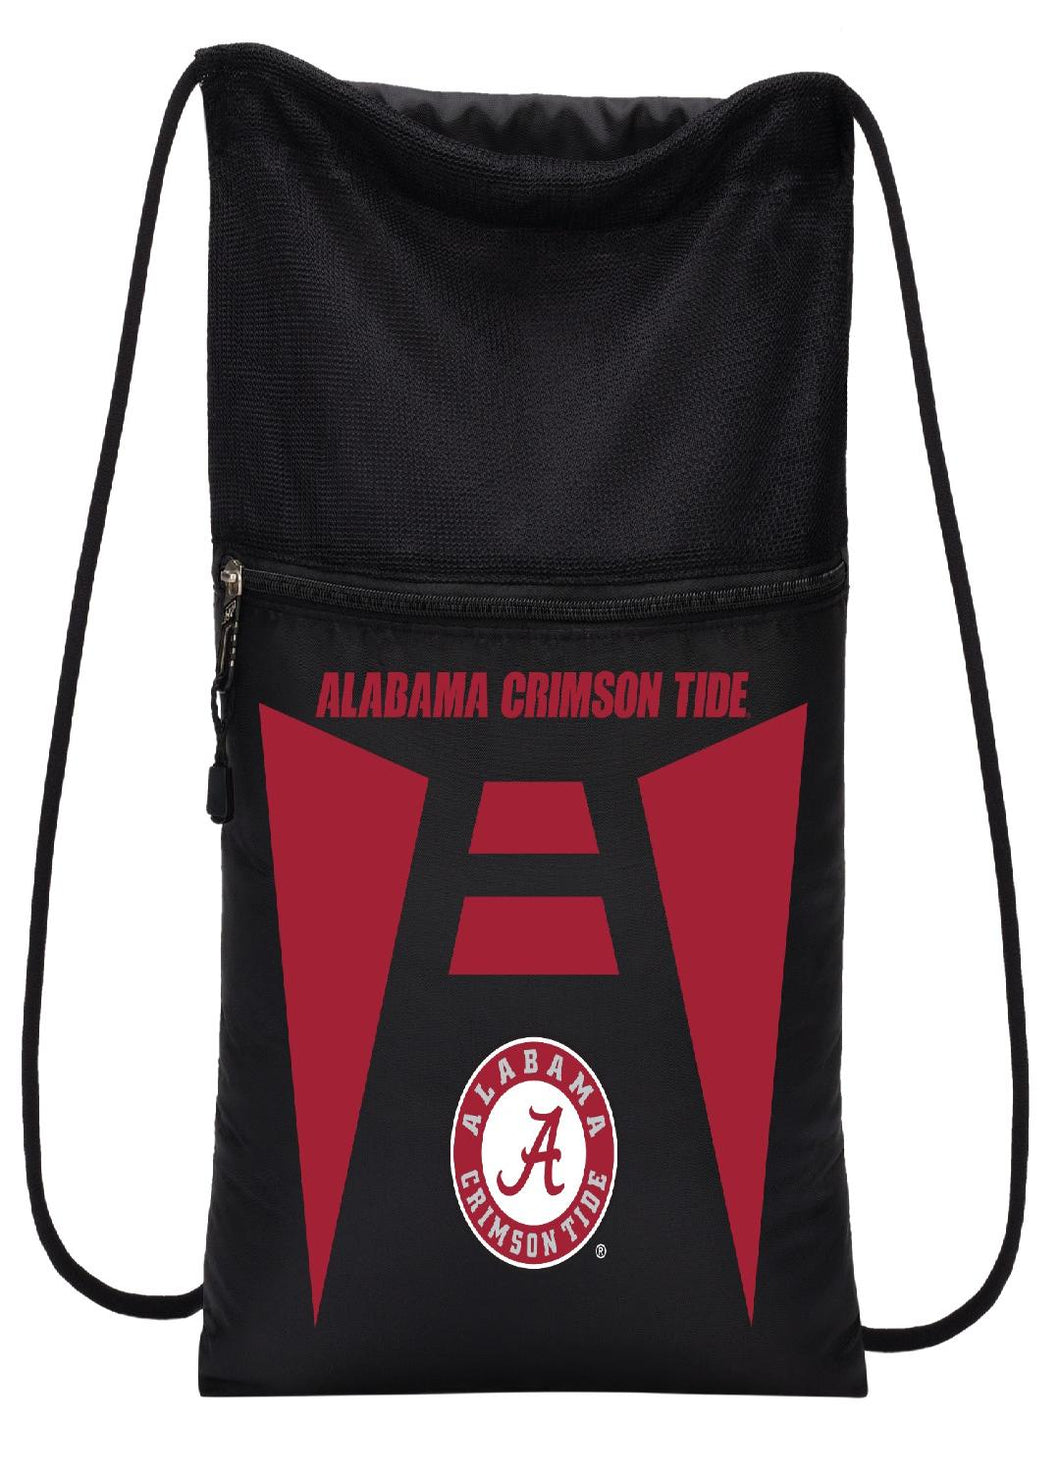 Alabama Crimson Tide Team Tech Backsack